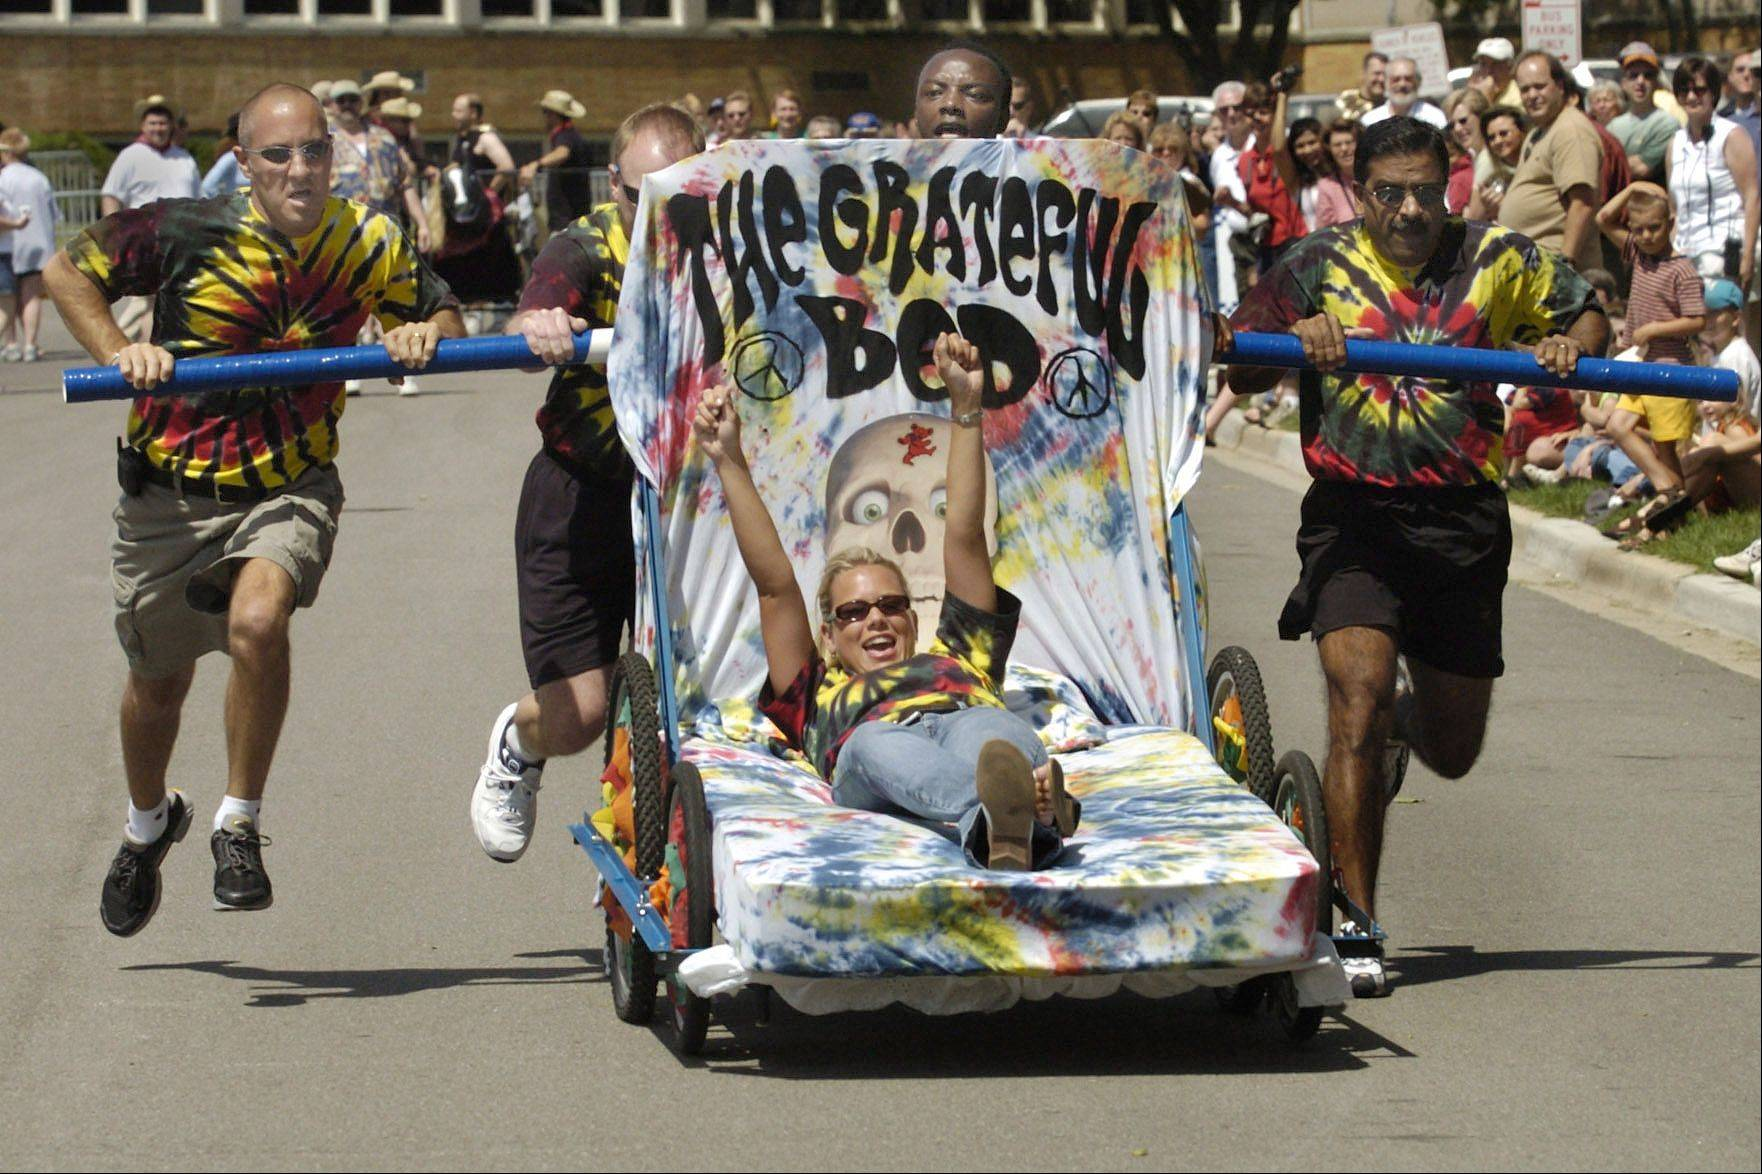 Teams get creative with the design and themes of their �beds� during the annual Last Fling Bed Races in Naperville. The races are set to begin at 11 a.m. Saturday, Aug. 31.